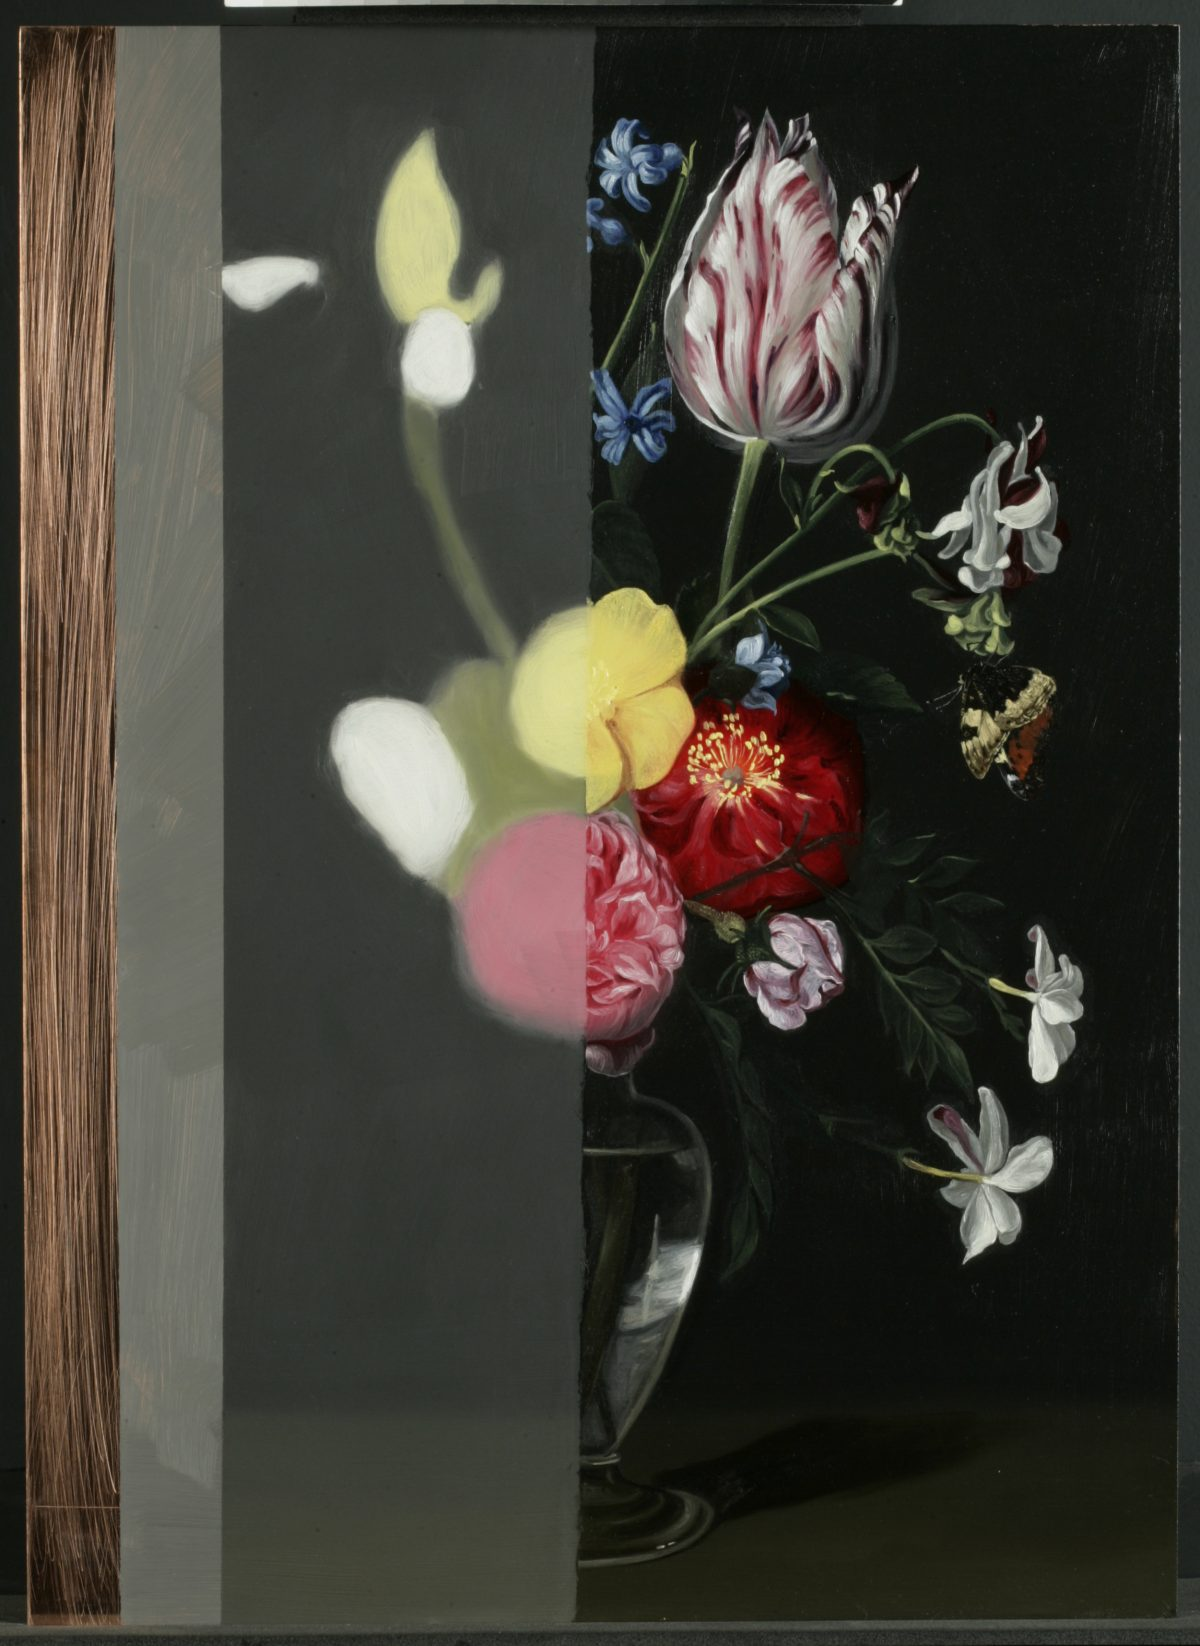 Reconstructing a 17th century Flemish flower painting